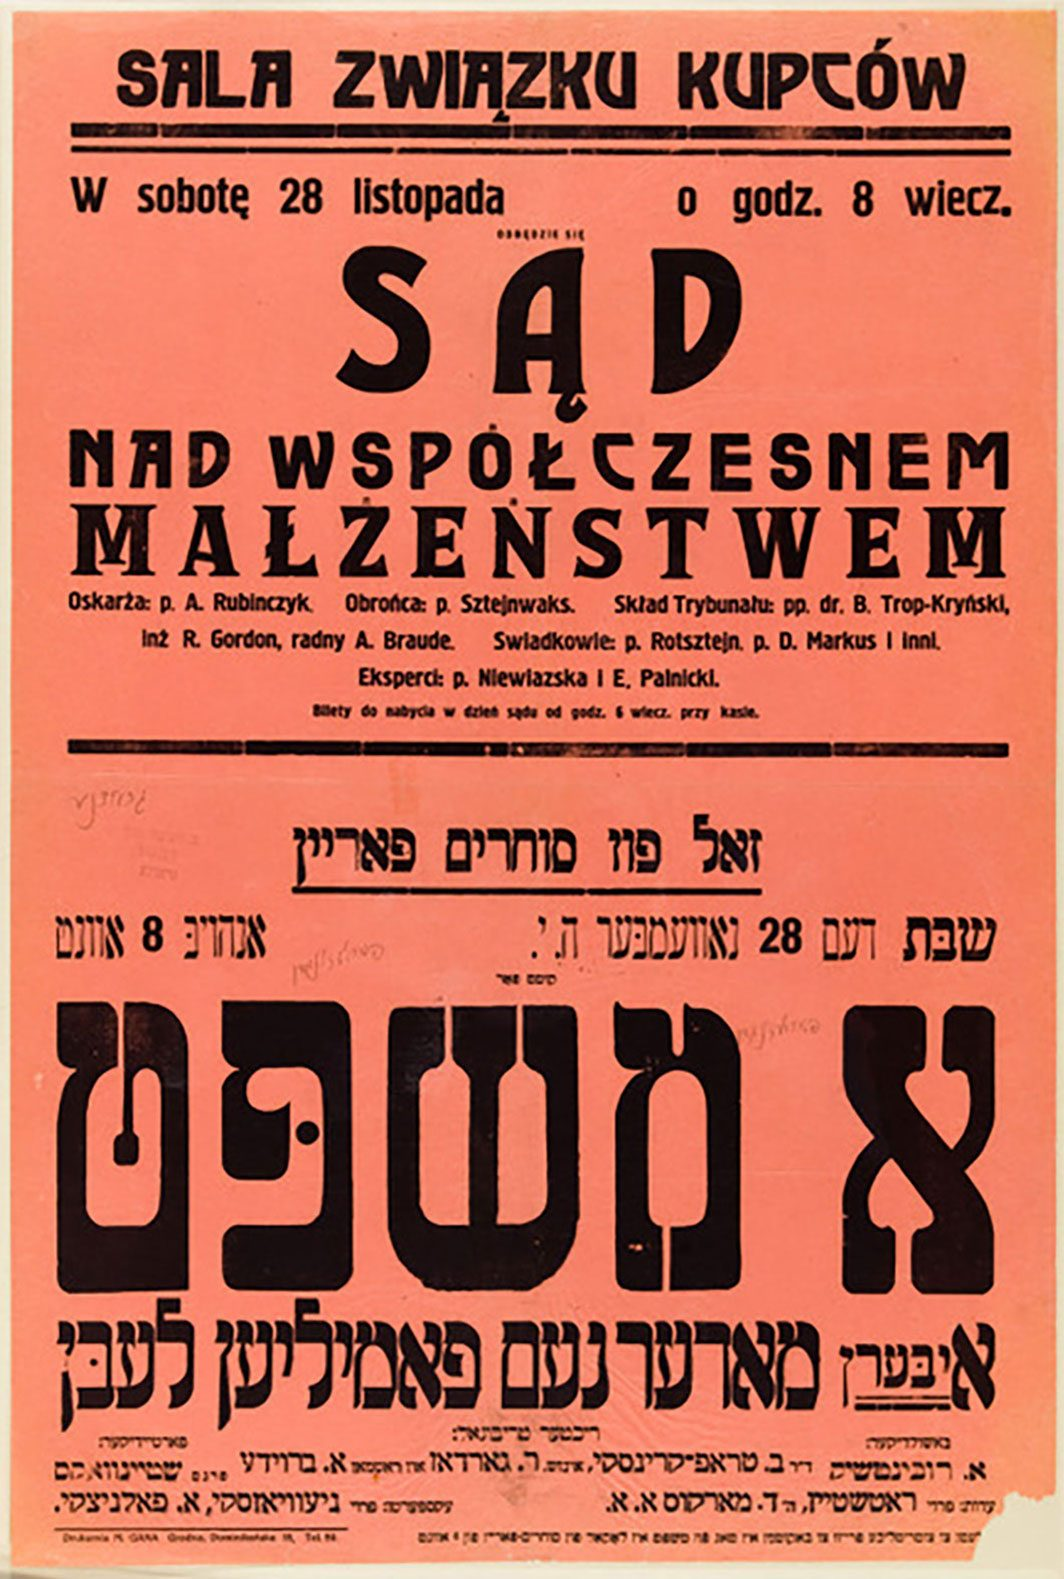 Poster advertising for an event